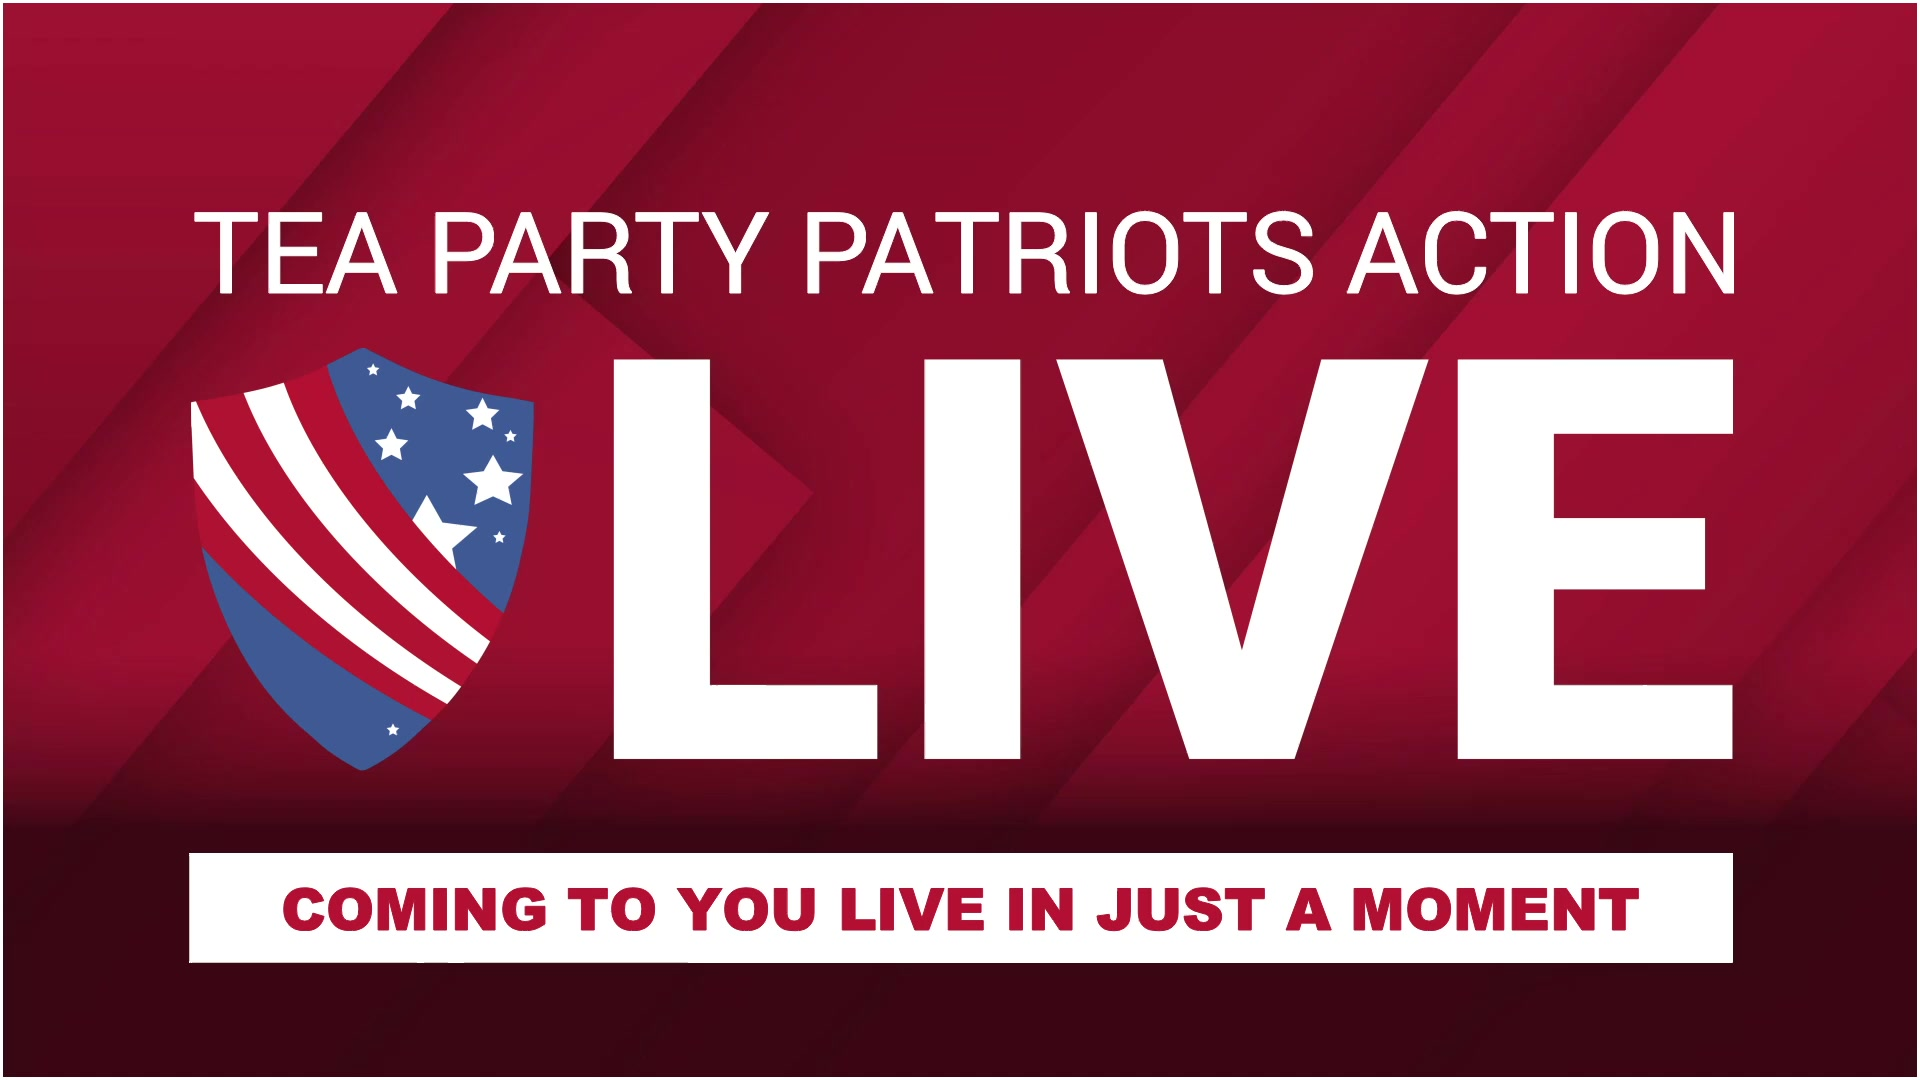 today-on-tea-party-patriots-action-s-lunchbreak-live-9-20-21-the-house-and-senate-are-both-back-in-session-at-the-same-time-for-the-first-time-since-j_thumbnail.jpg